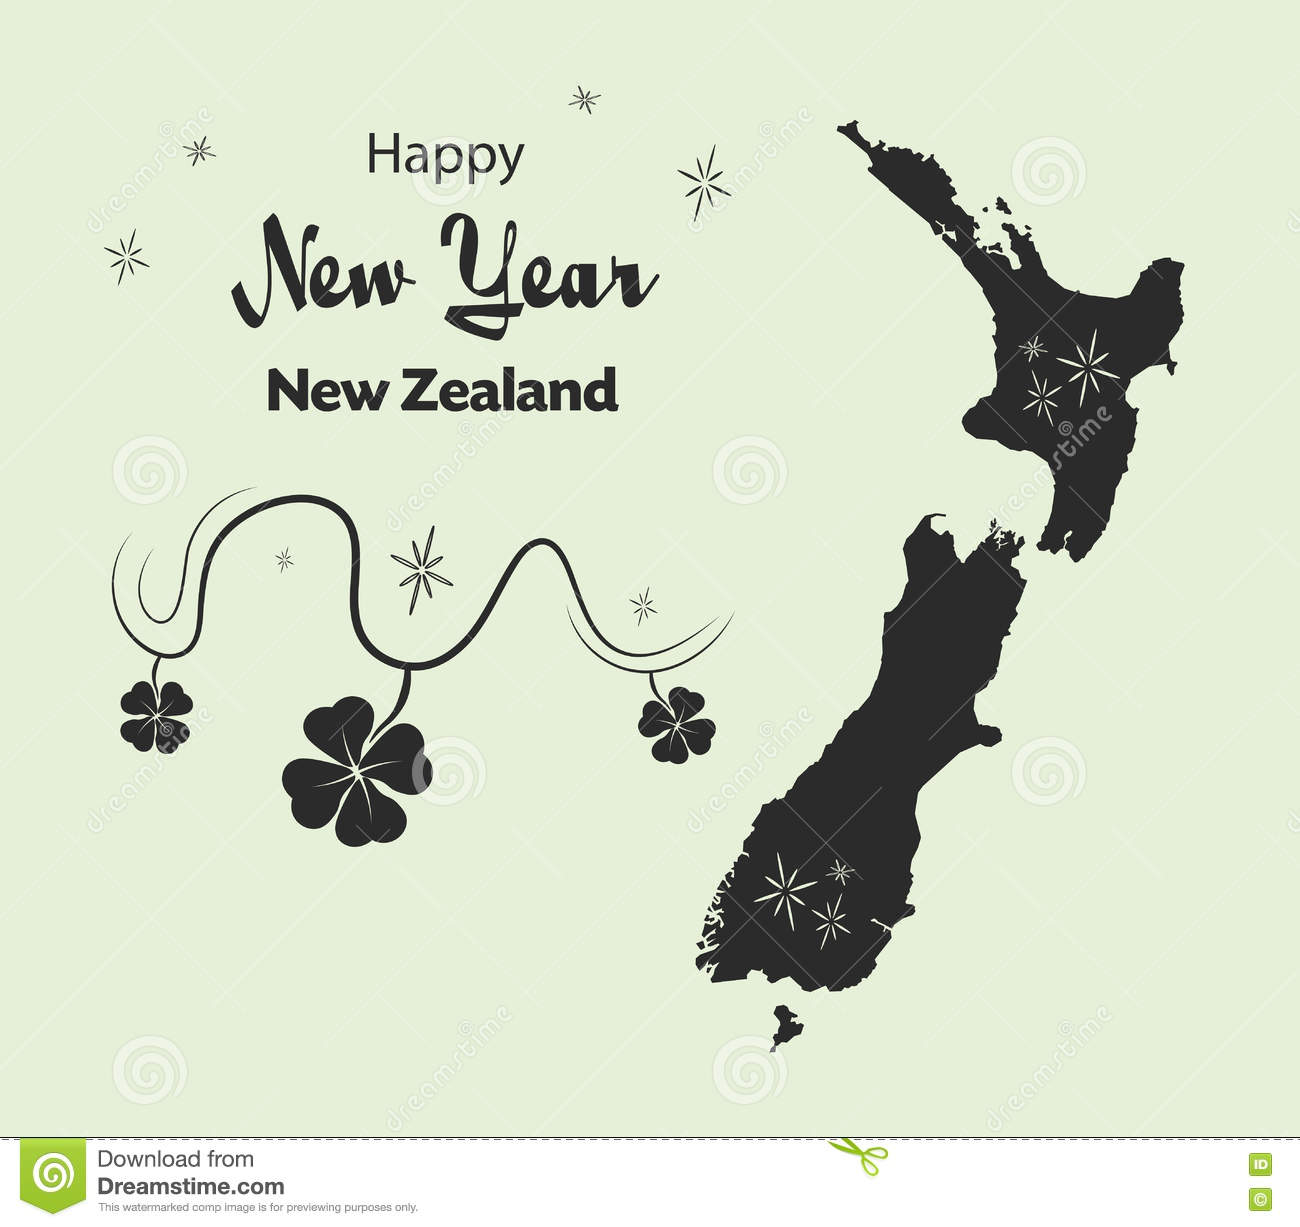 Happy New Year Theme With Map Of New Zealand Stock ... on